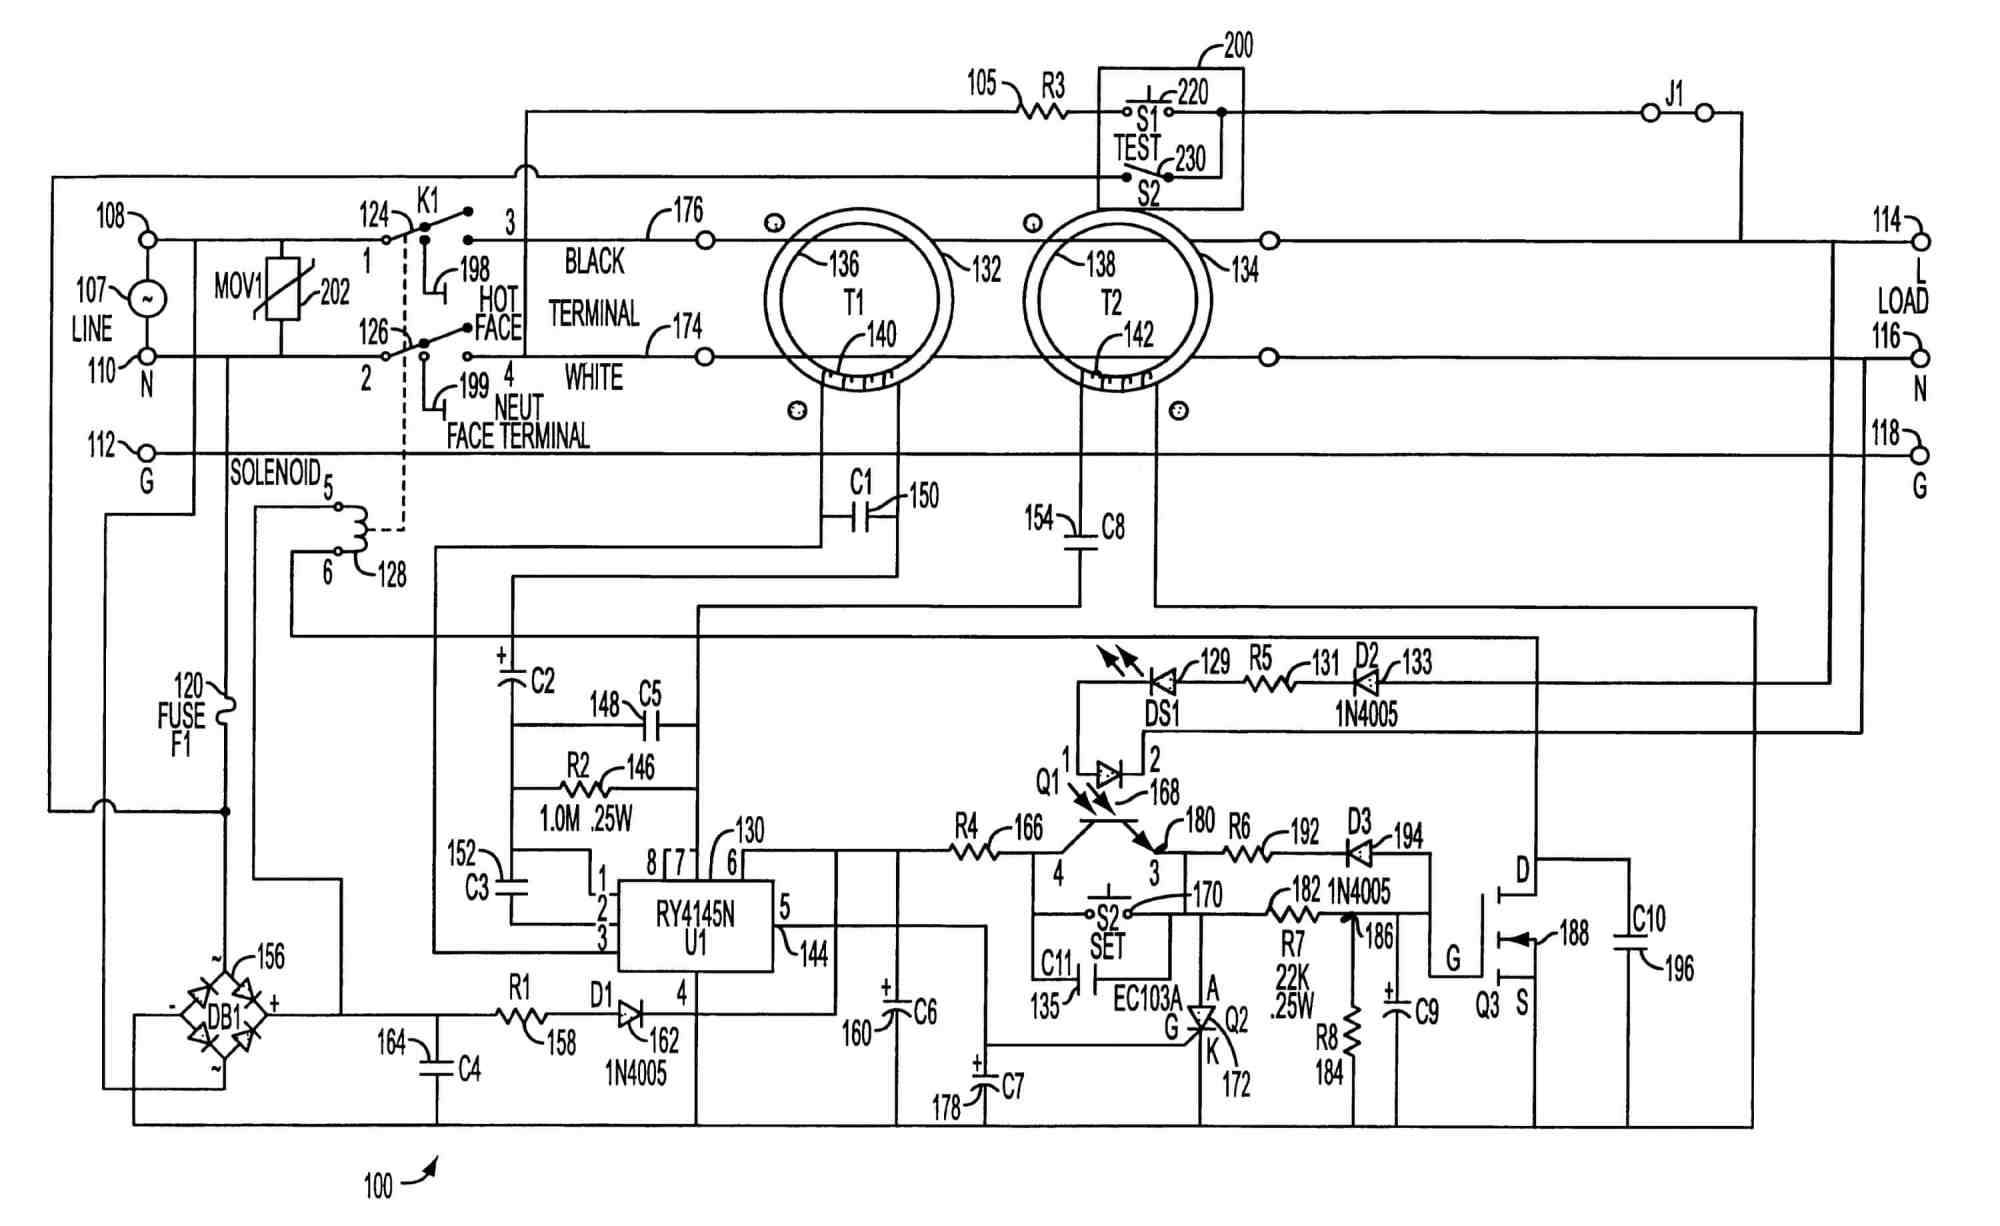 hight resolution of gfci williams electric 510 339 5601 oakland ground fault breaker wiring diagram outlets in series wiring diagram